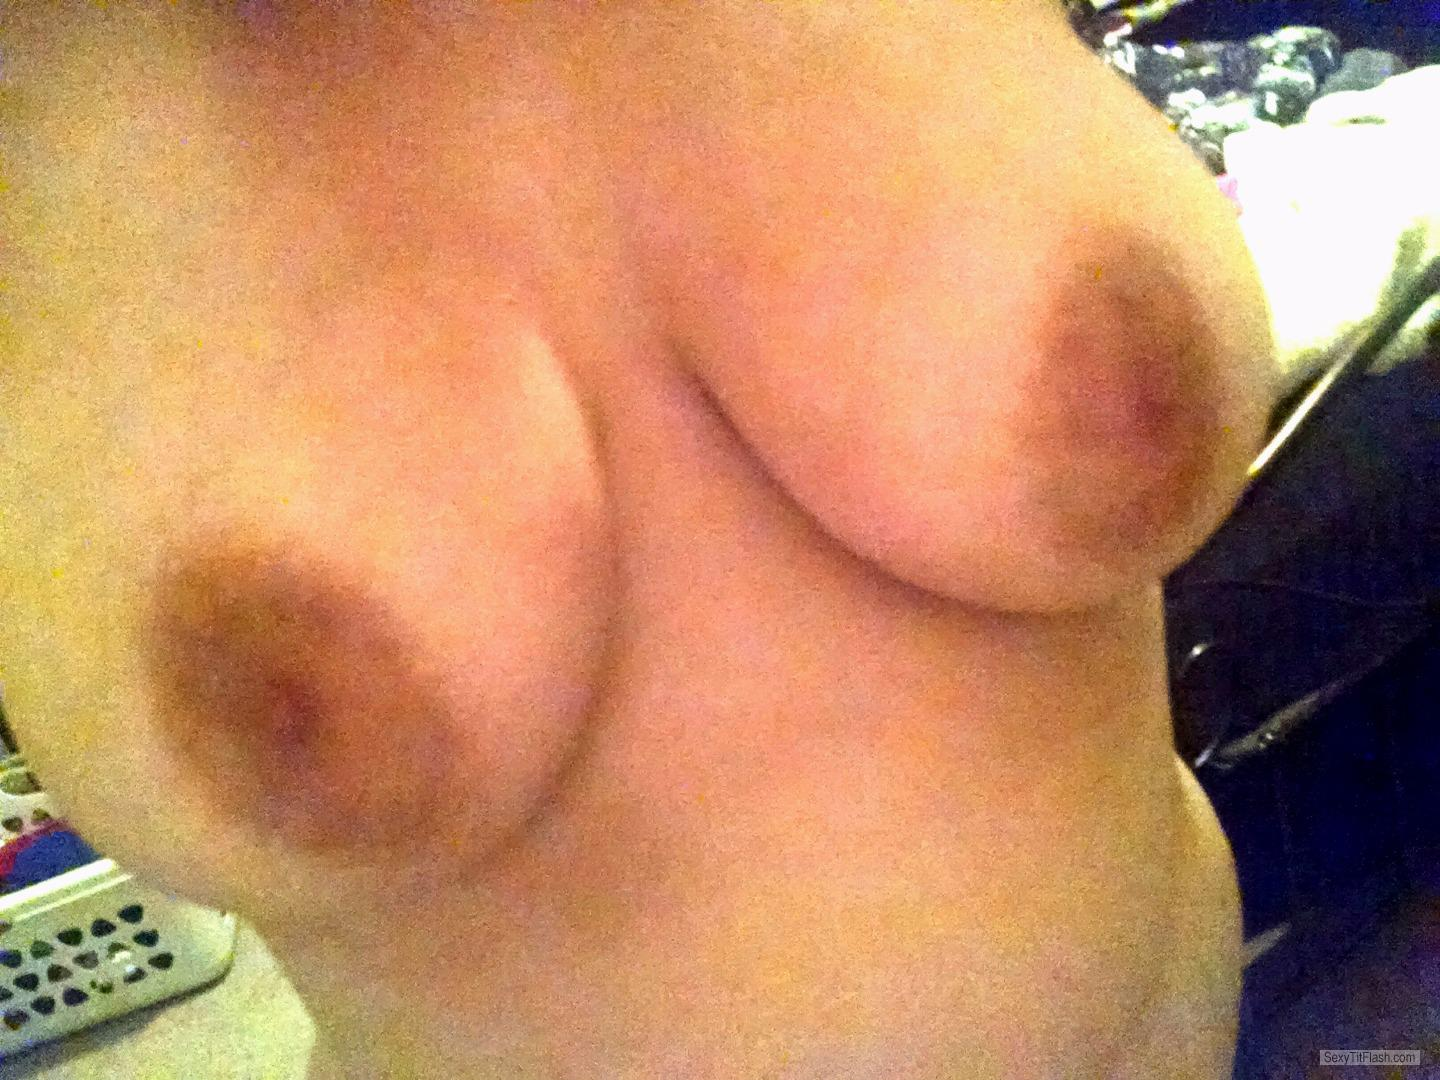 Very big Tits Of My Girlfriend Selfie by Zsaz